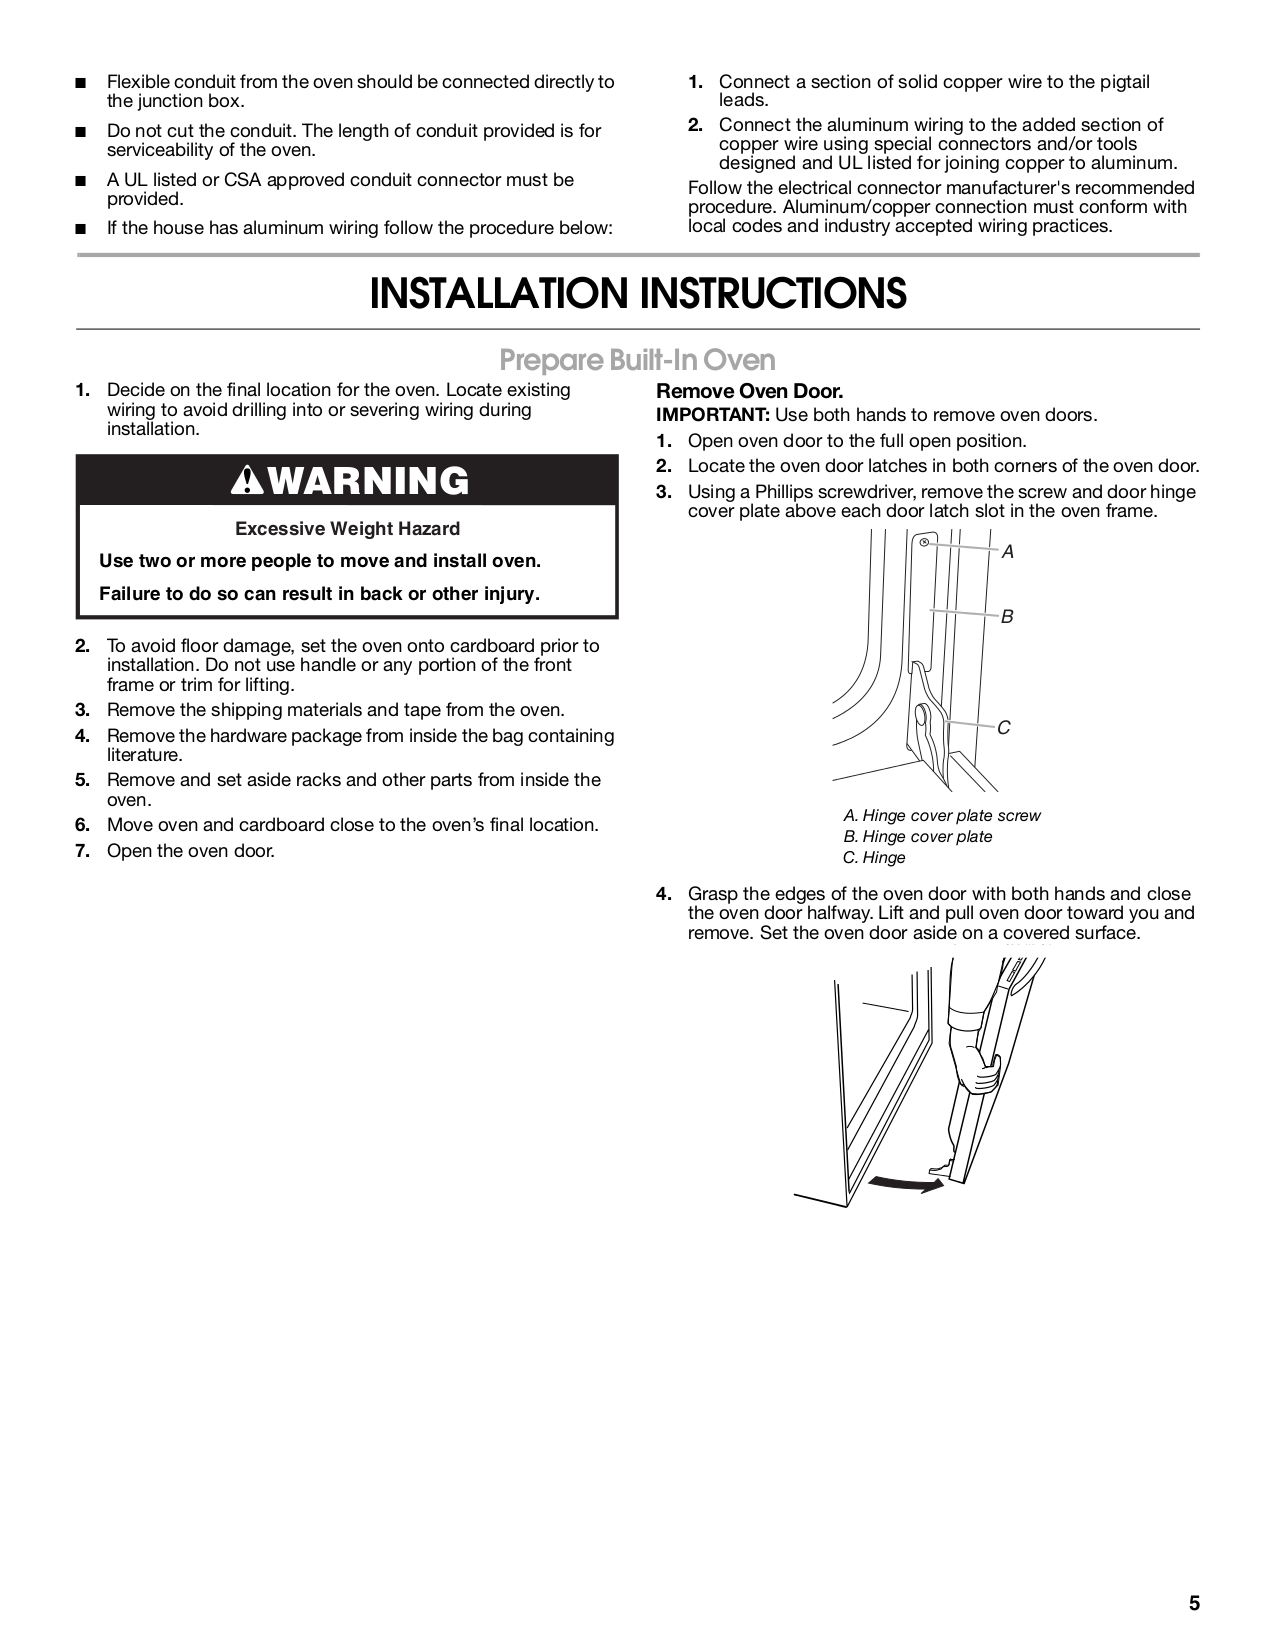 Pdf Manual For Maytag Oven Mew6530dds Pigtail Aluminum Wiring